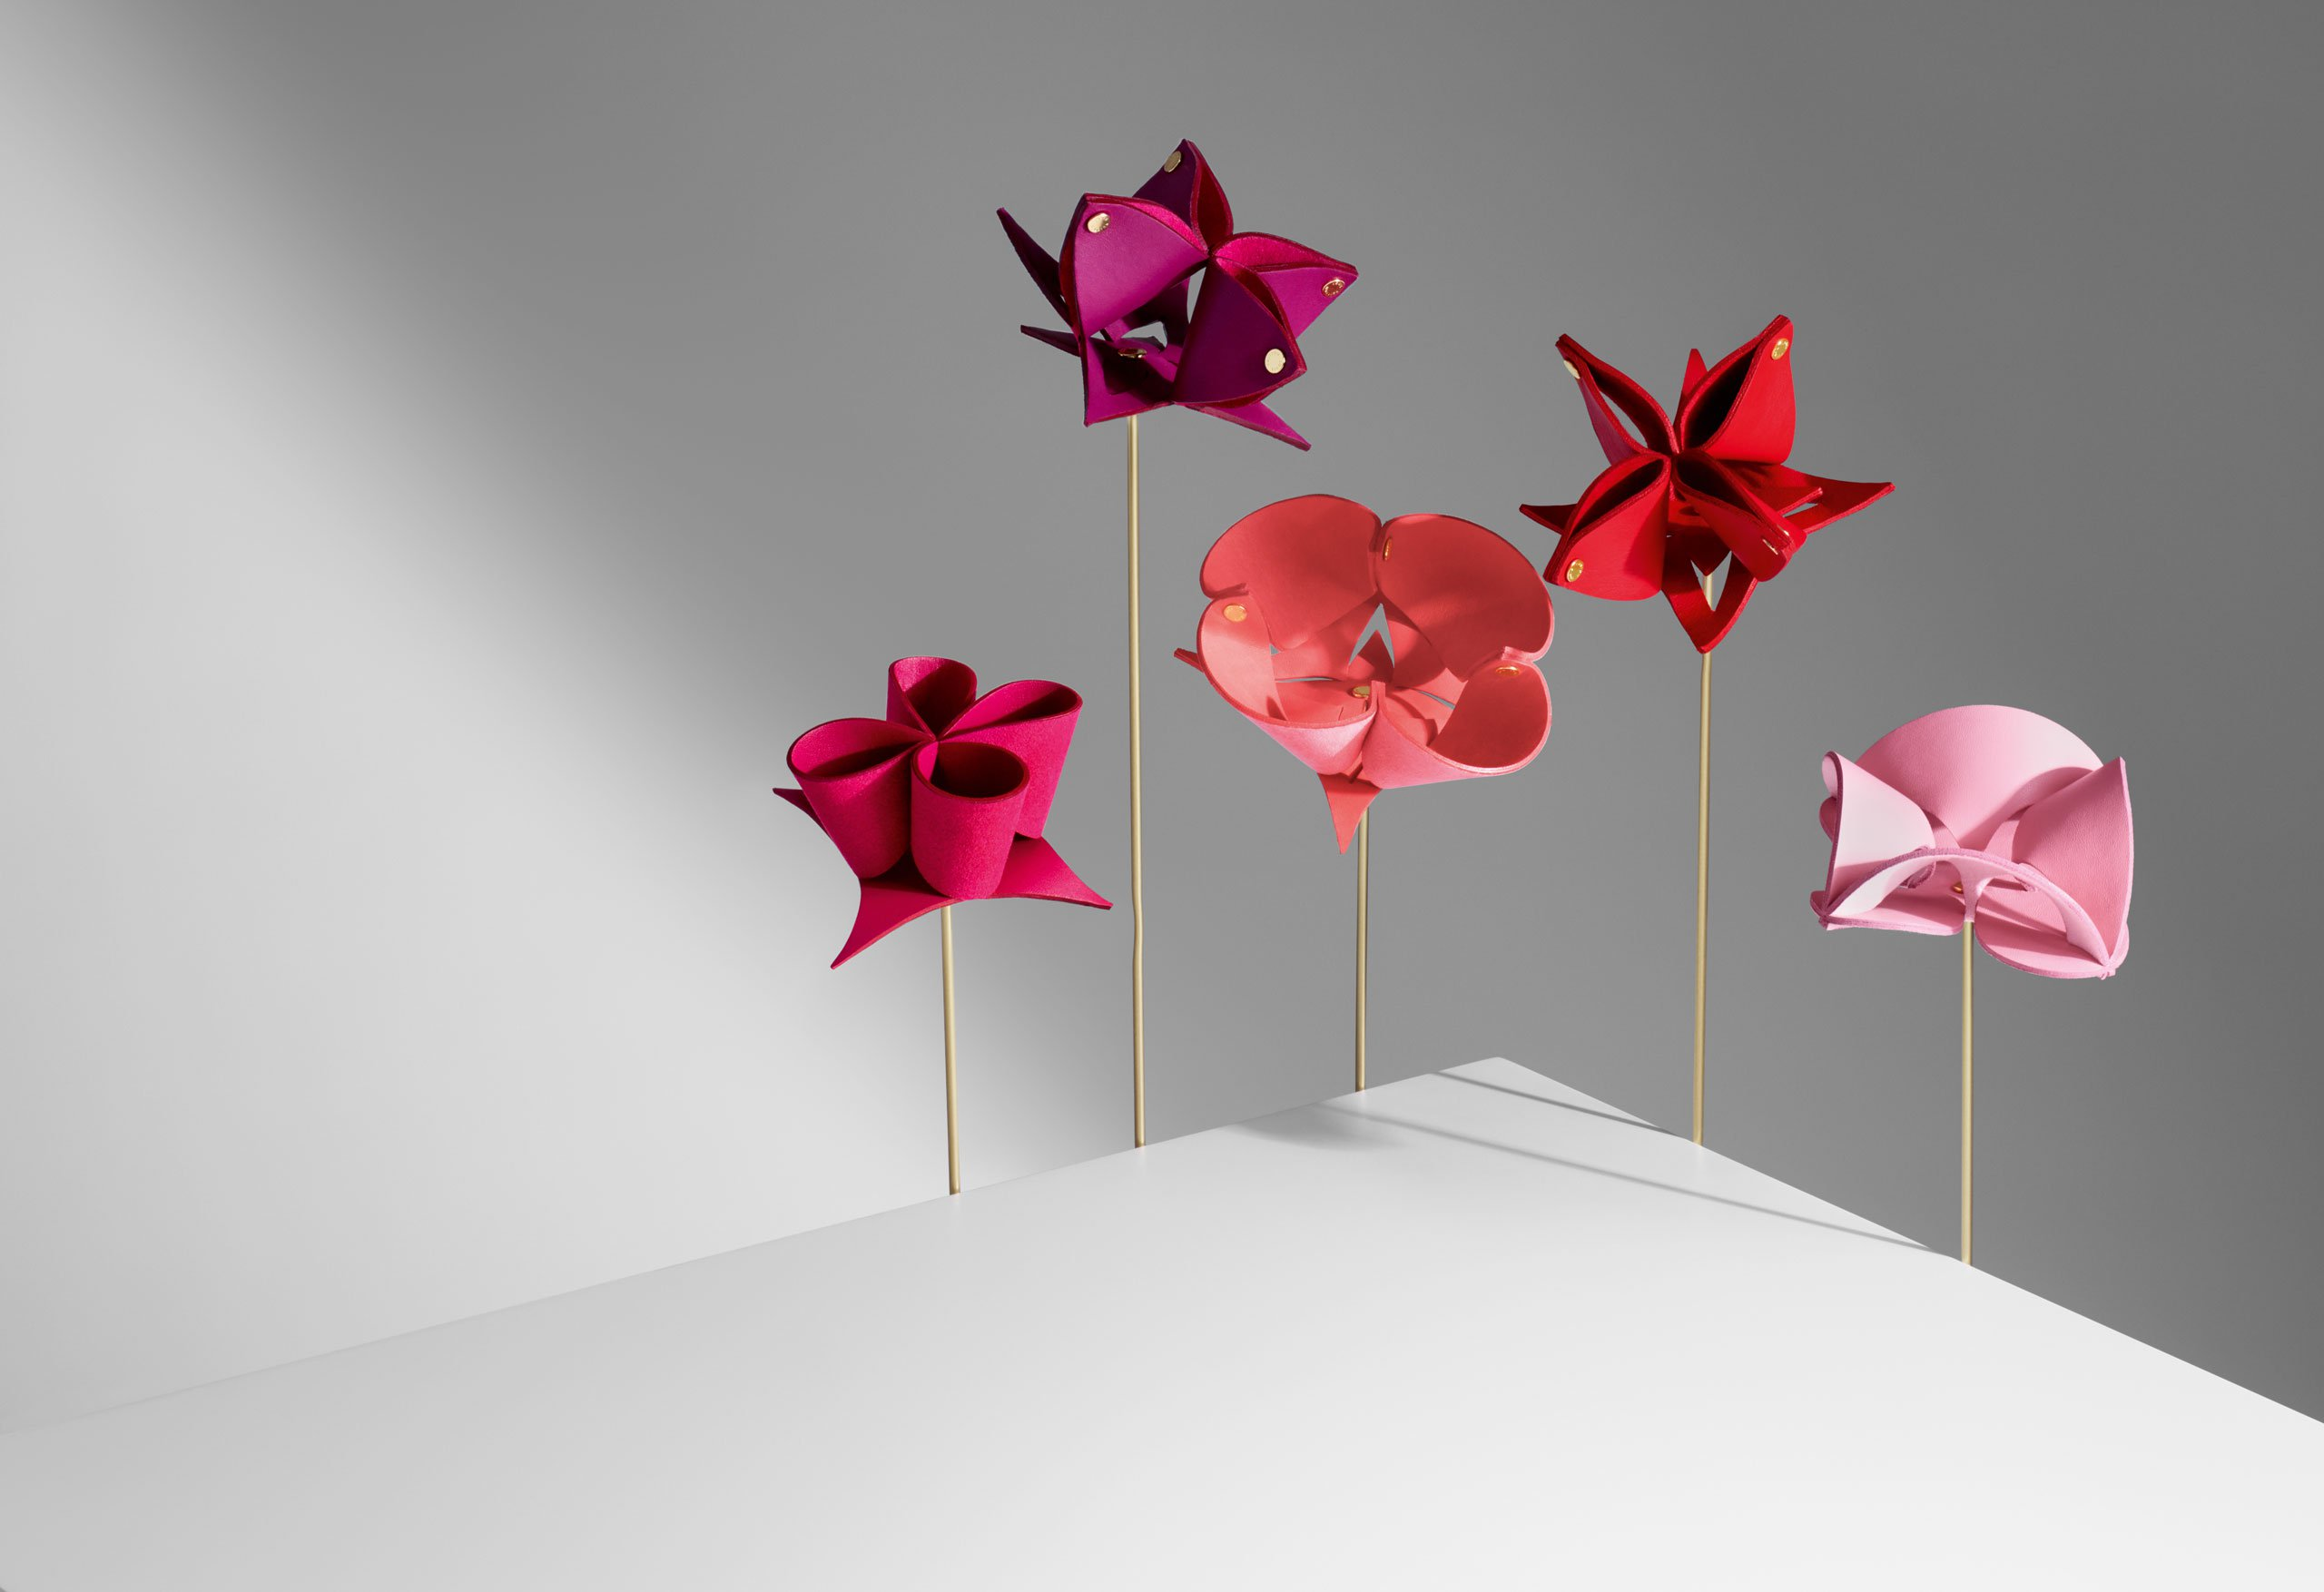 Do You Want to be in the Spotlight at Milan Design 2019 - Origami Flowers by Atelier Oï milan design week Do You Want to be in the Spotlight at Milan Design Week 2019? Do You Want to be in the Spotlight at Milan Design 2019 Origami Flowers by Atelier Oi